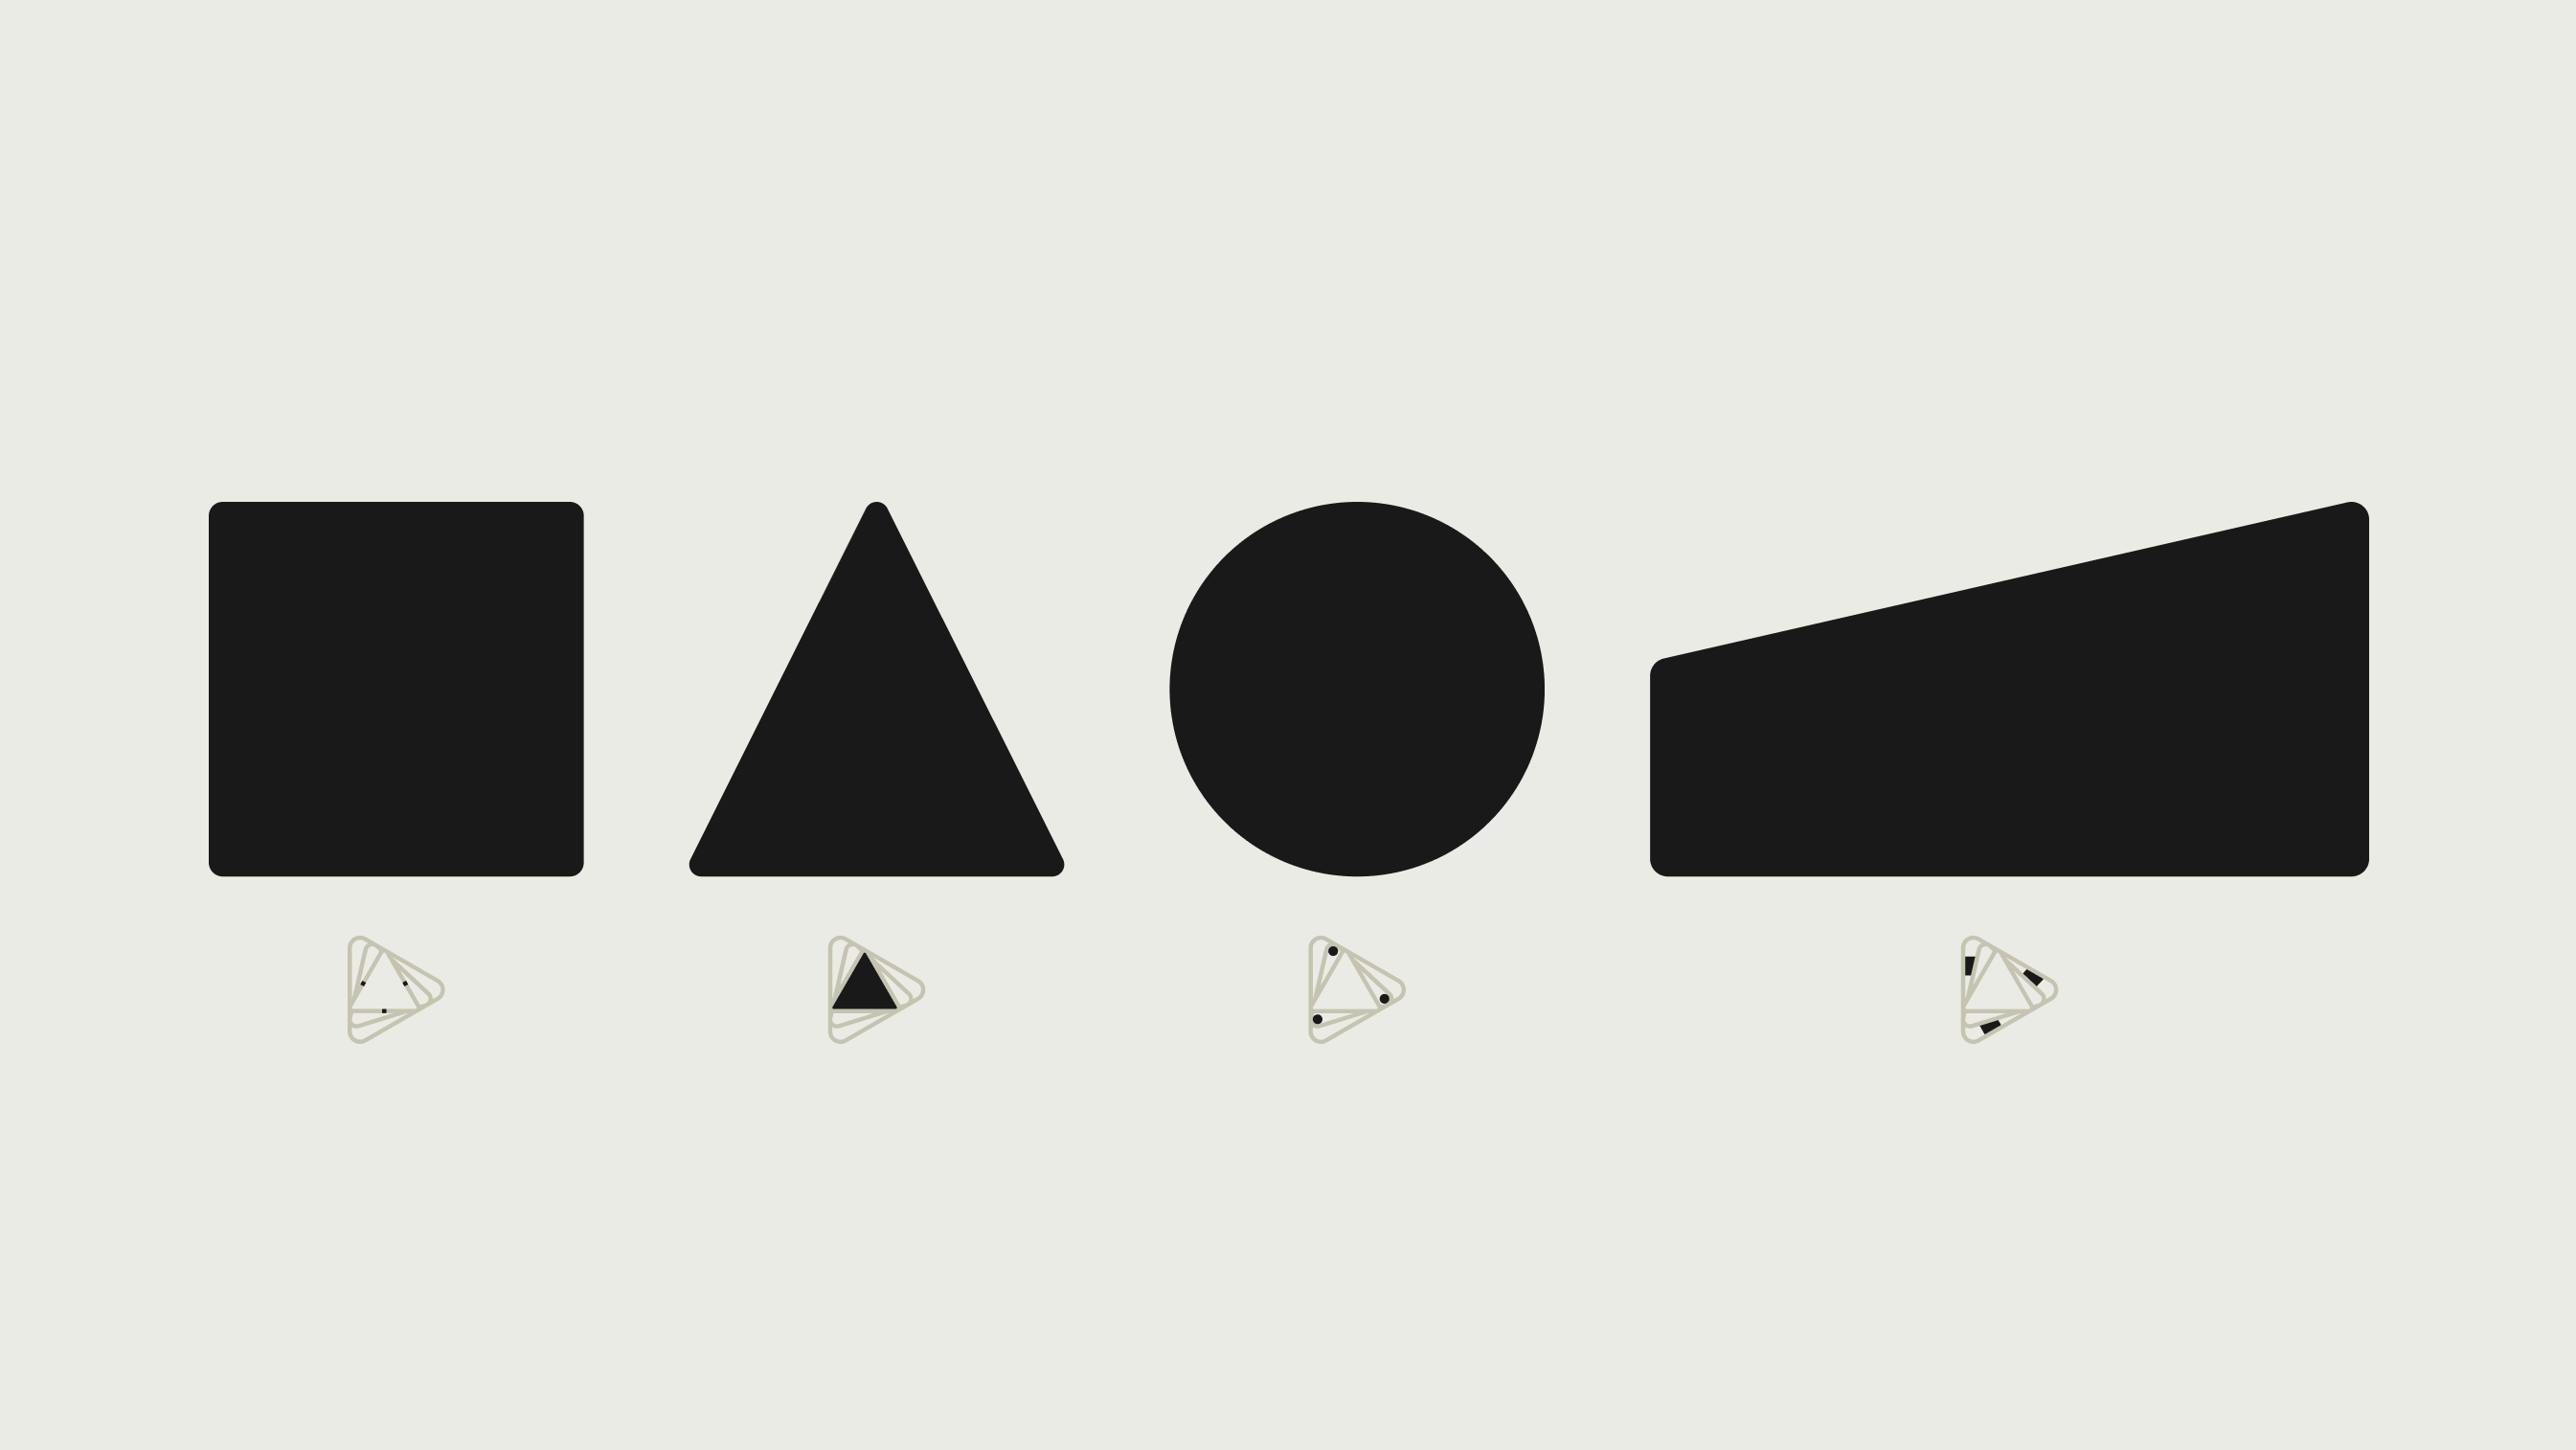 Four shapes in our graphic system